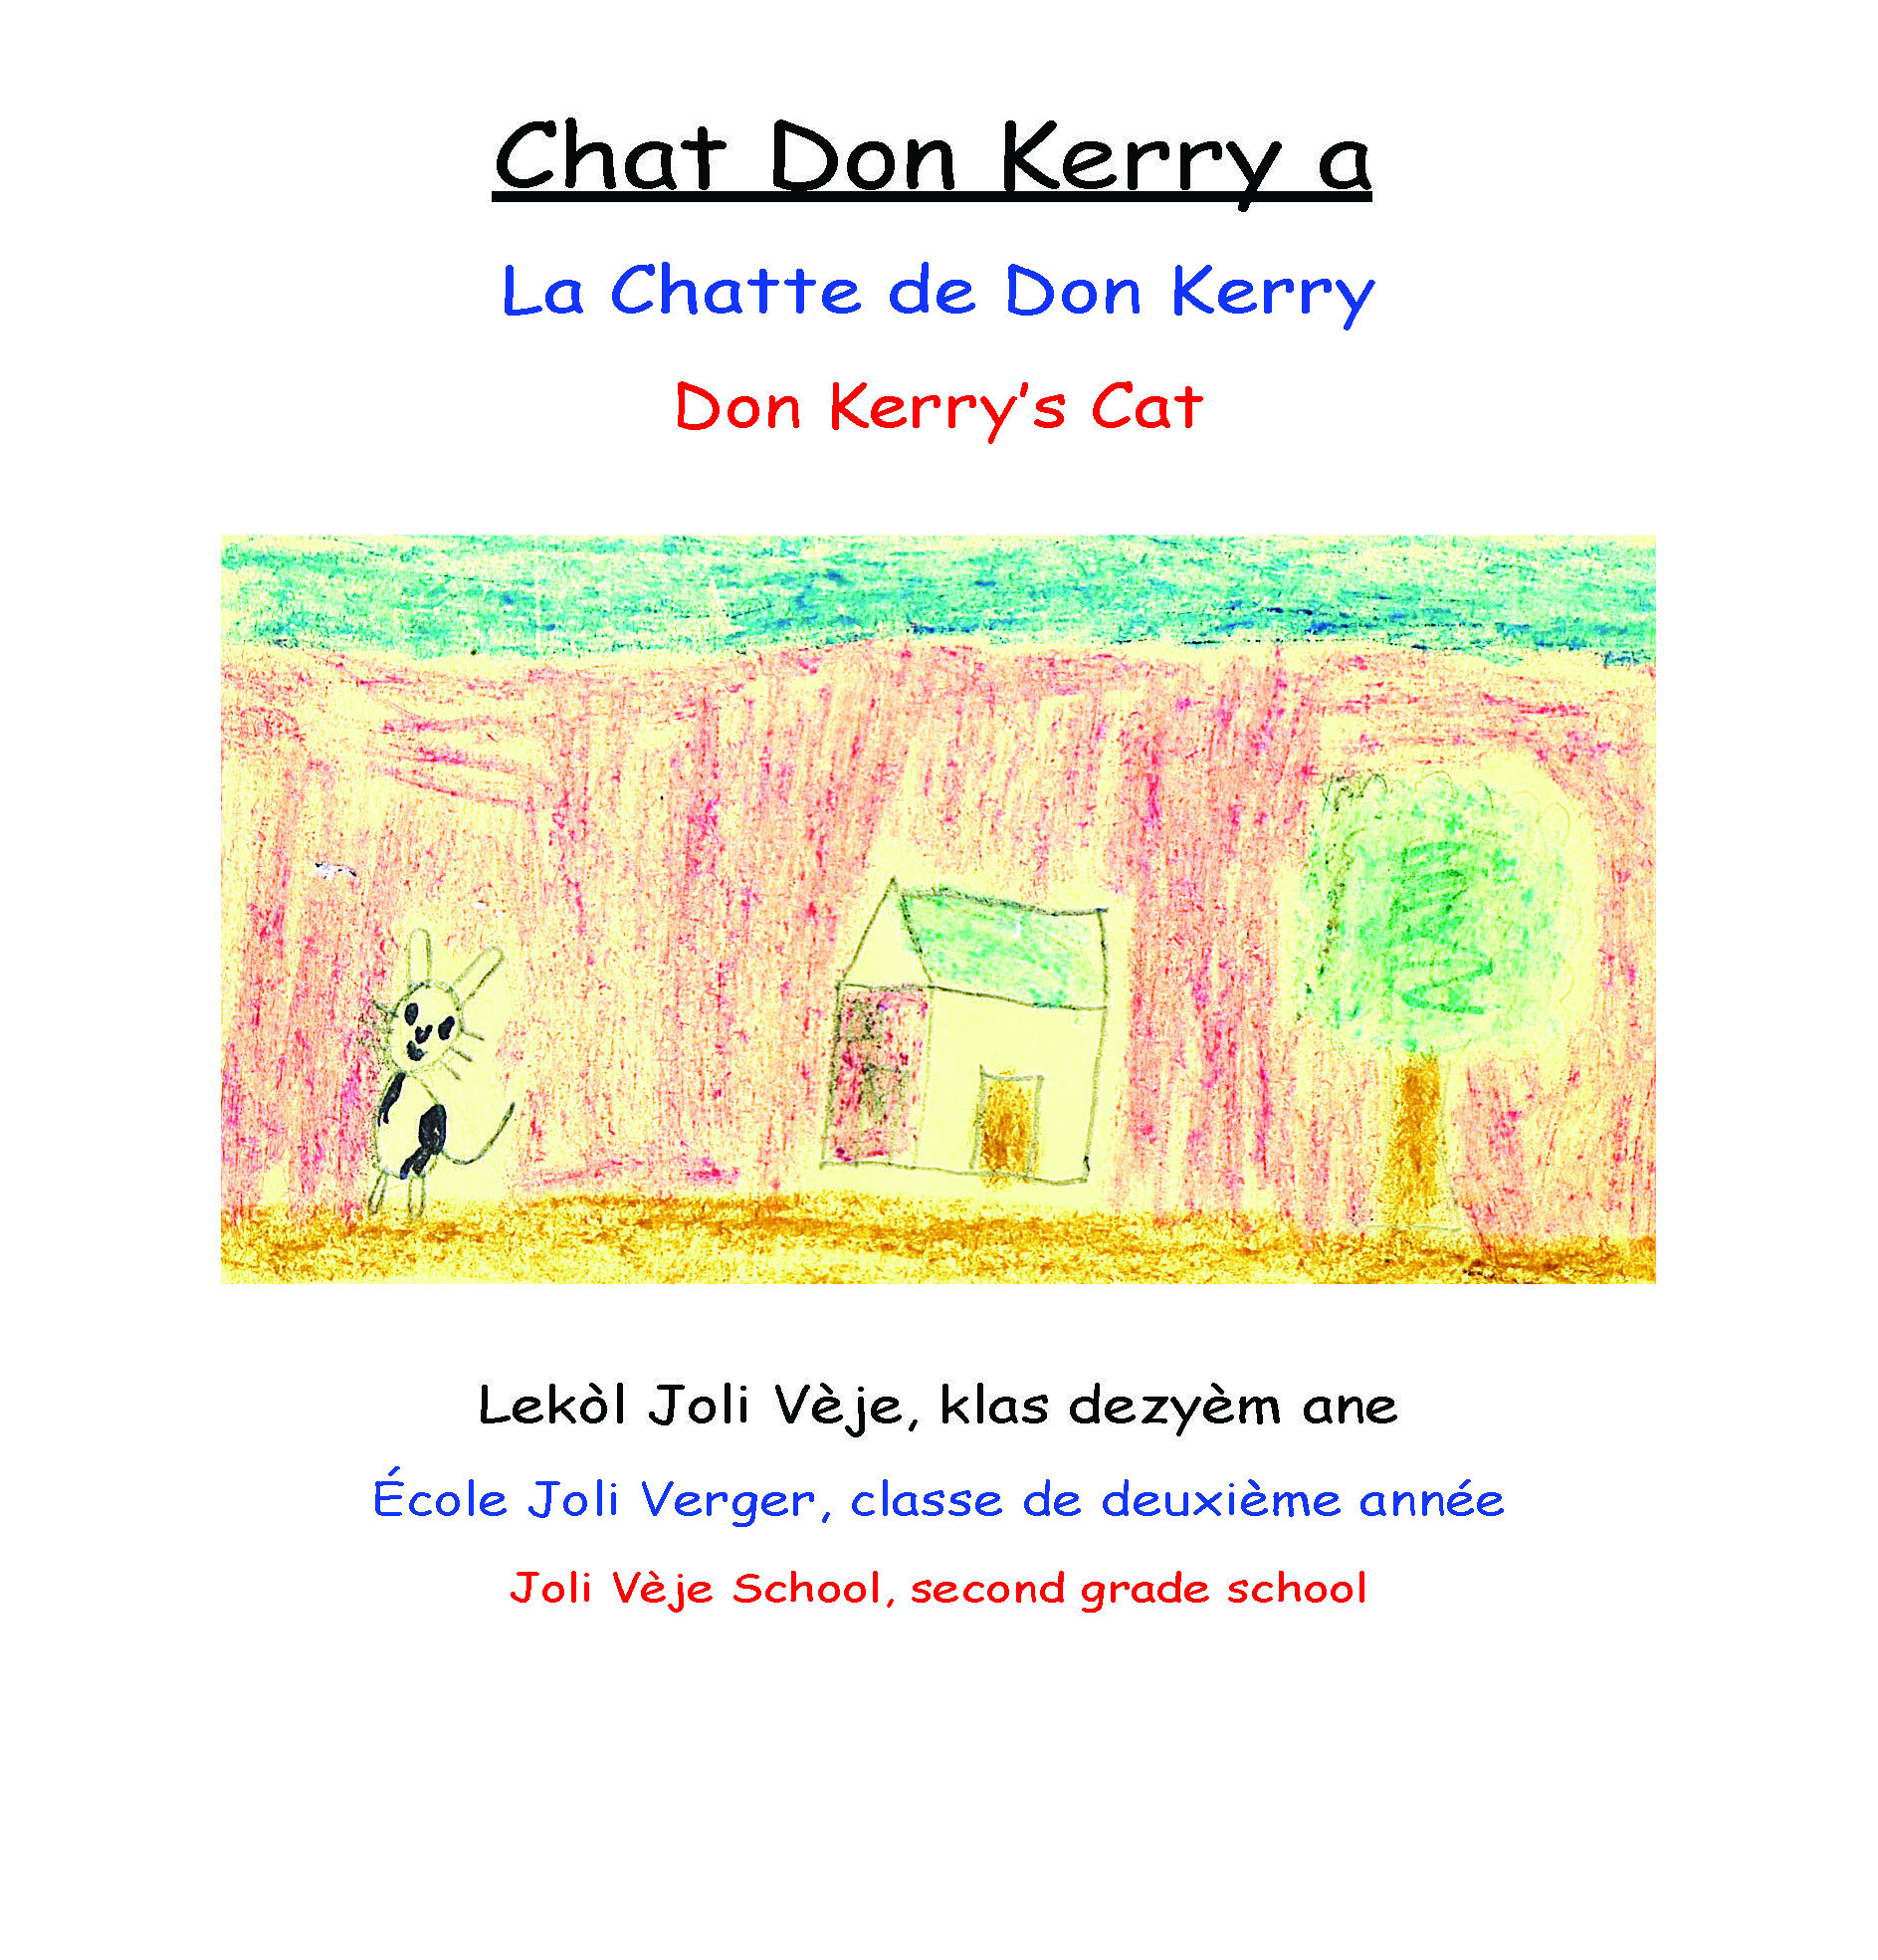 Chat Don Kerry a / Don Kerry's Cat